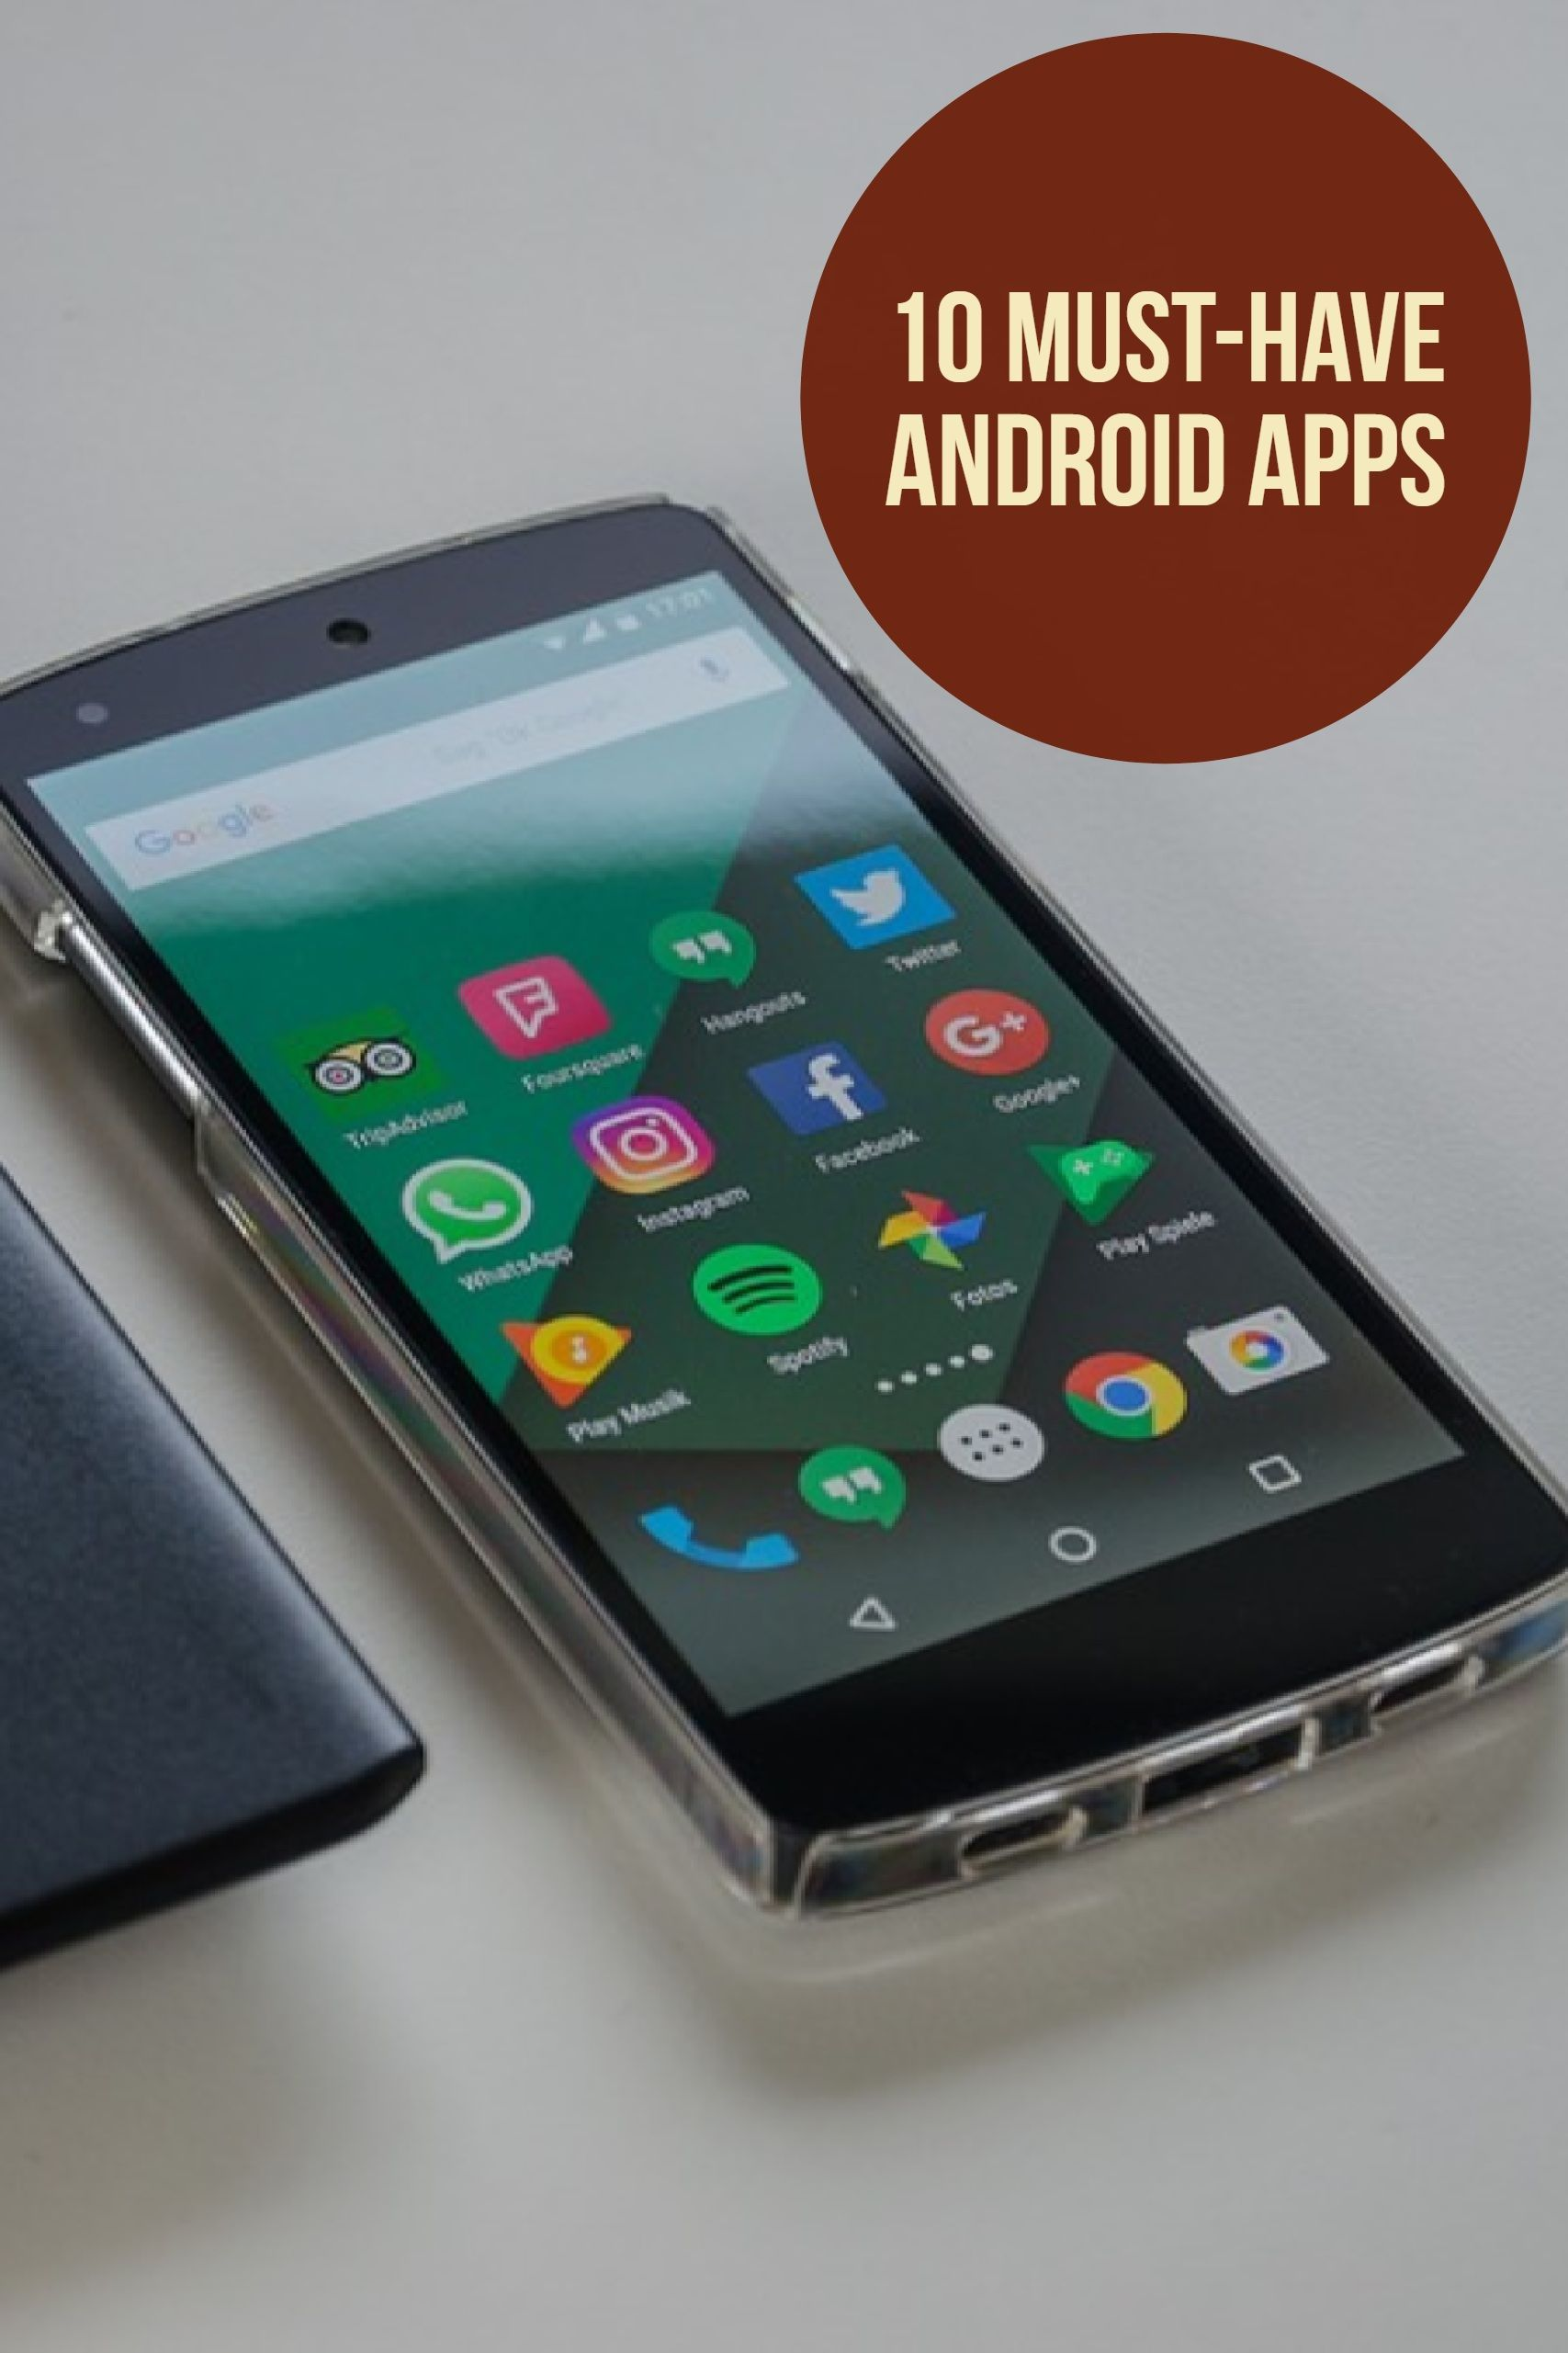 10 MustHave Android Apps for 2019 The Best Apps in 2019